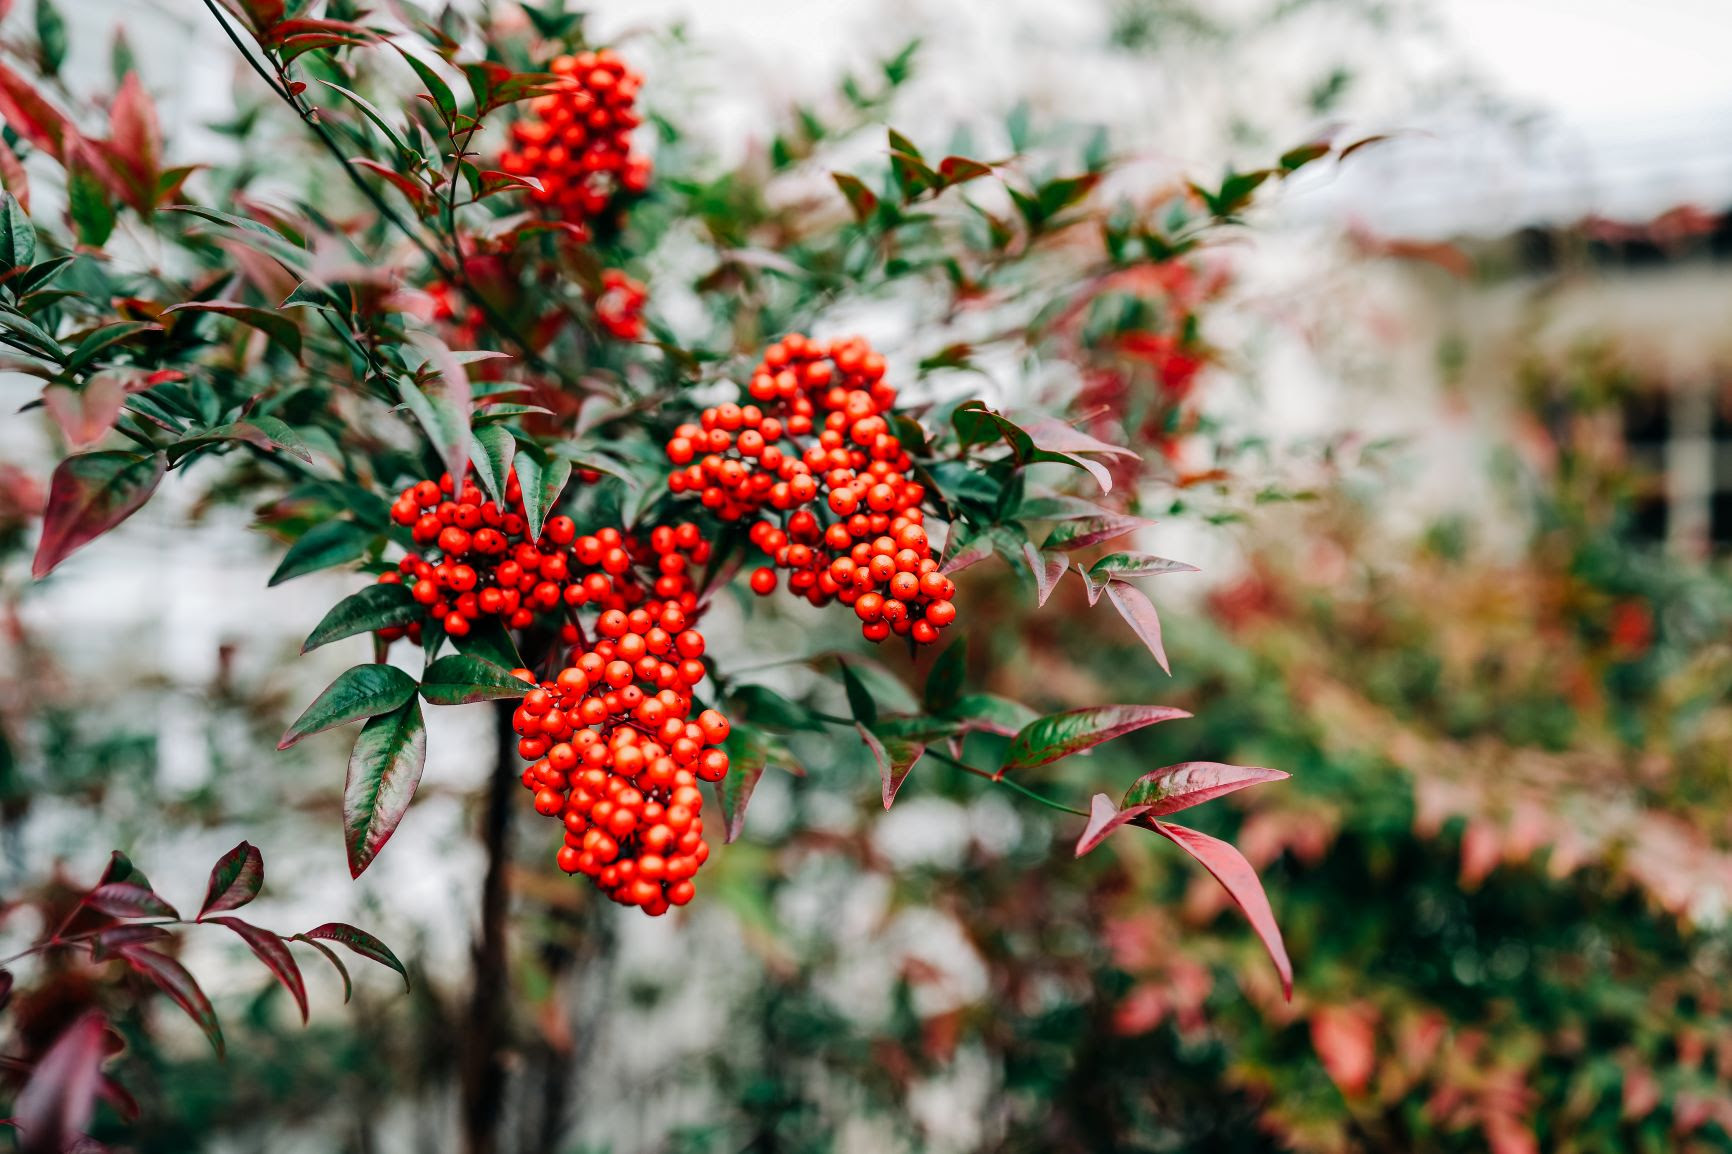 Hills-and-Dales-Garden-Winterberry